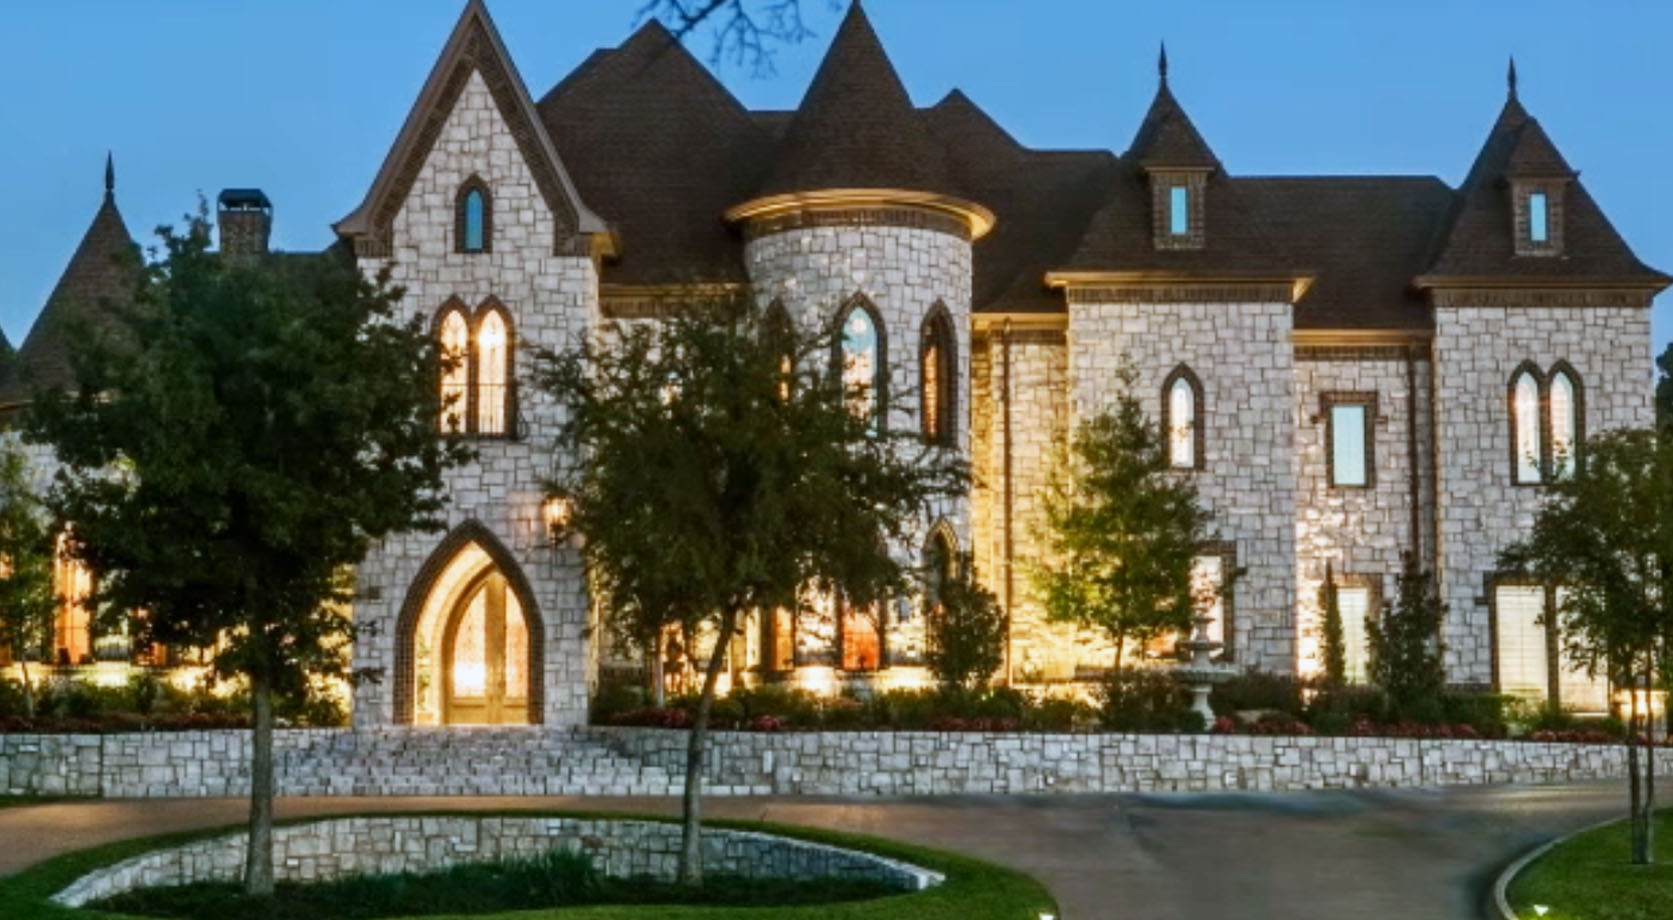 513 coyote rd southlake tx 76092 j lambert custom homes for Home builder contractors